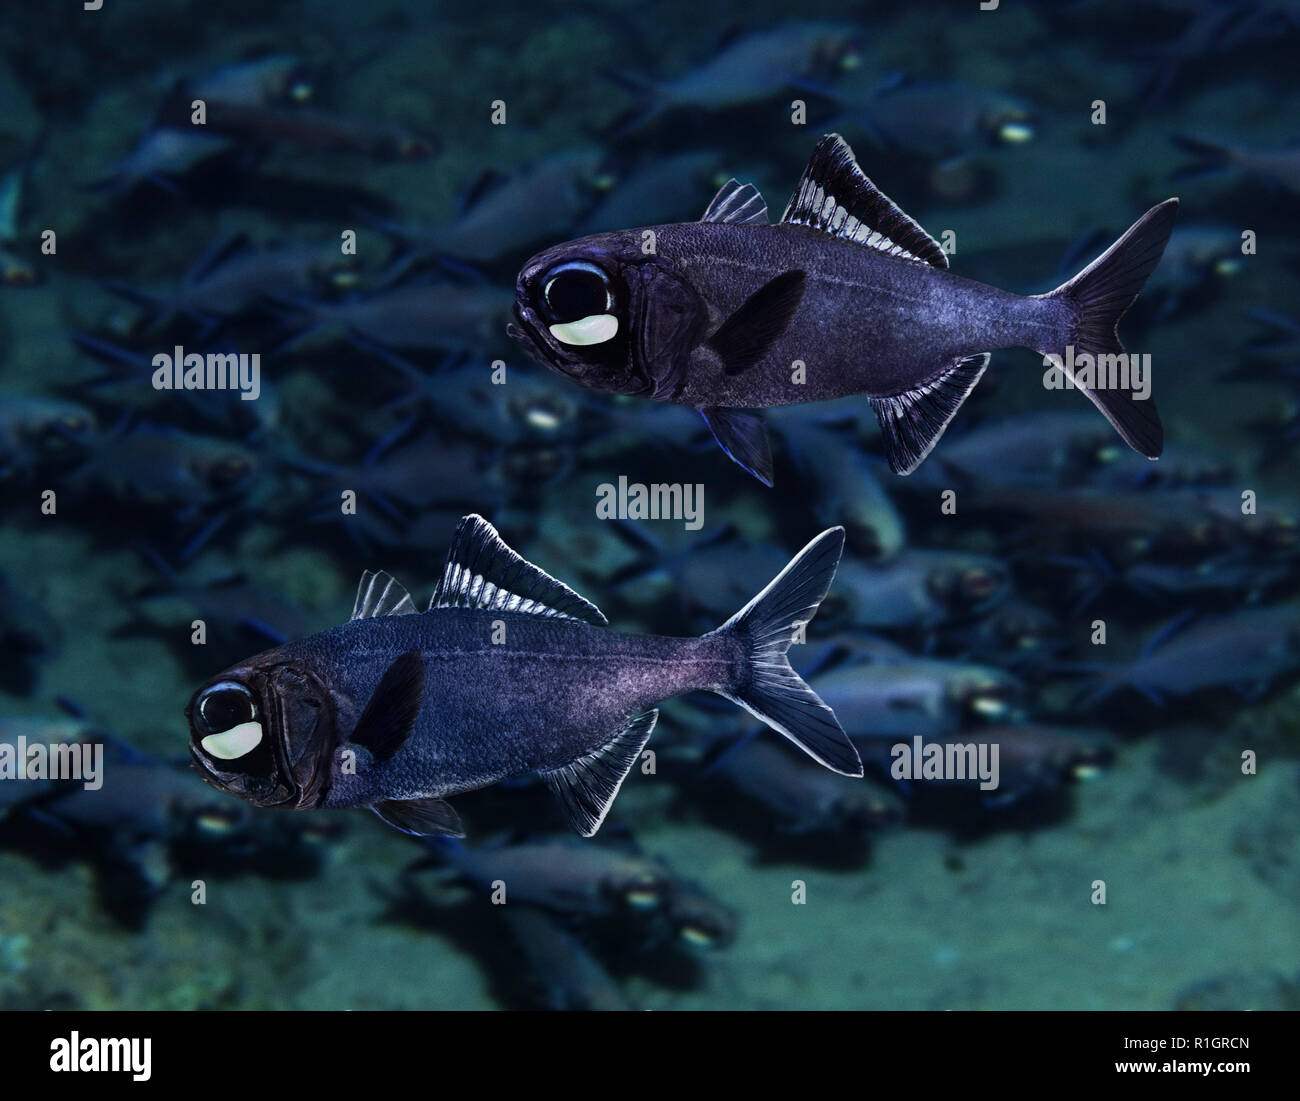 Splitfin flashlightfish or two-fin flashlightfish, Anomalops katoptron. They have two bean shaped torch-like organs under its eyes containing - Stock Image